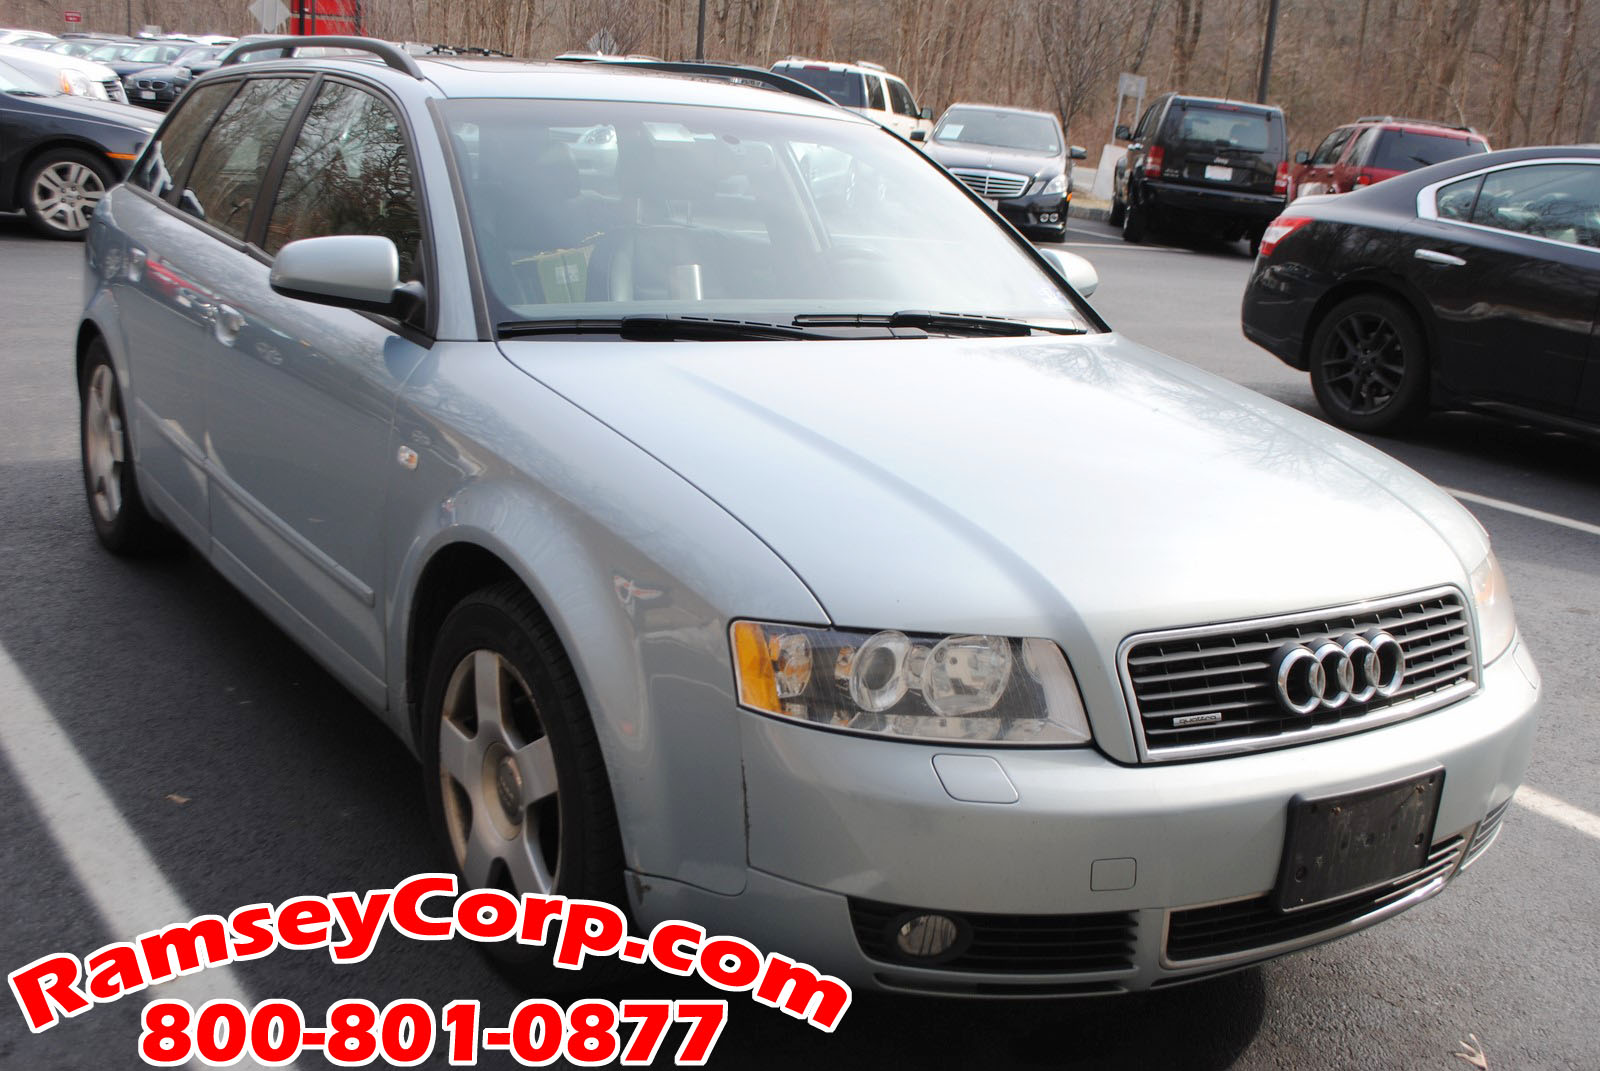 used 2004 audi a4 for sale west milford nj. Black Bedroom Furniture Sets. Home Design Ideas